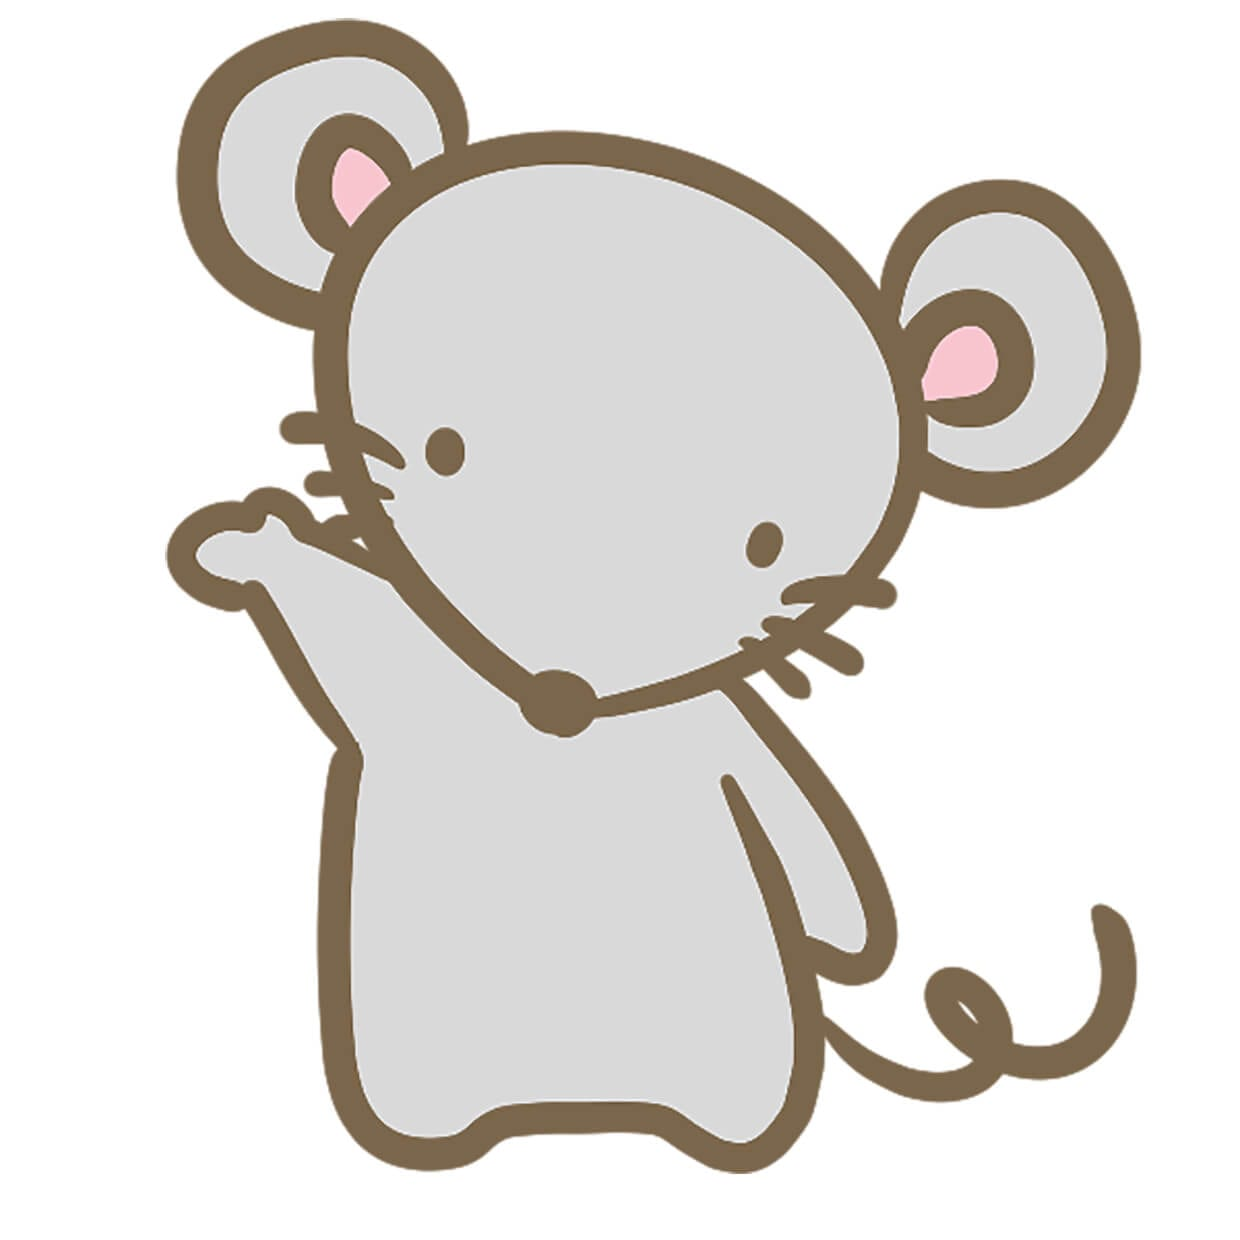 Mouse picture for kids 4